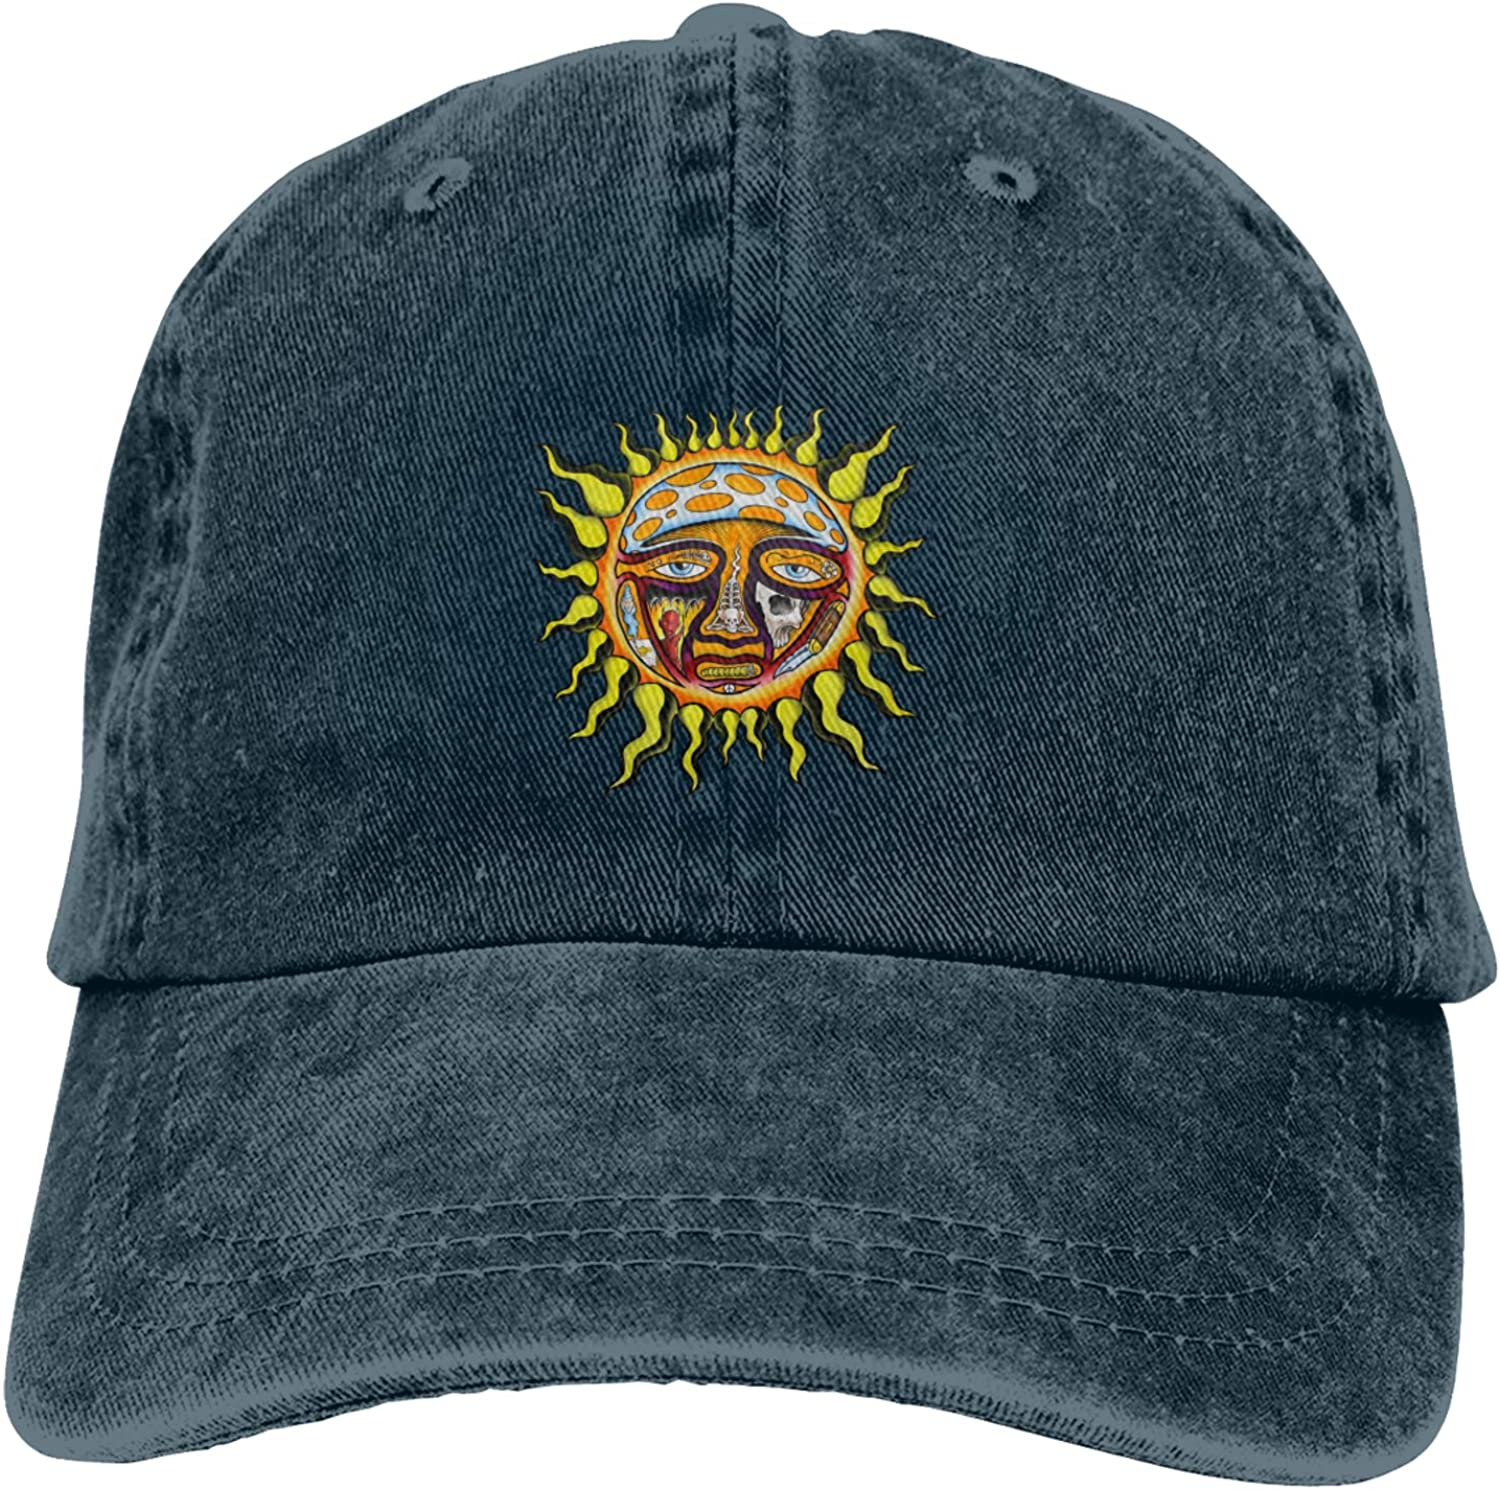 The Story Popular brand in the Cheap world of Sublimes Iconic Sun Logo Unisex Womens Casual Man's